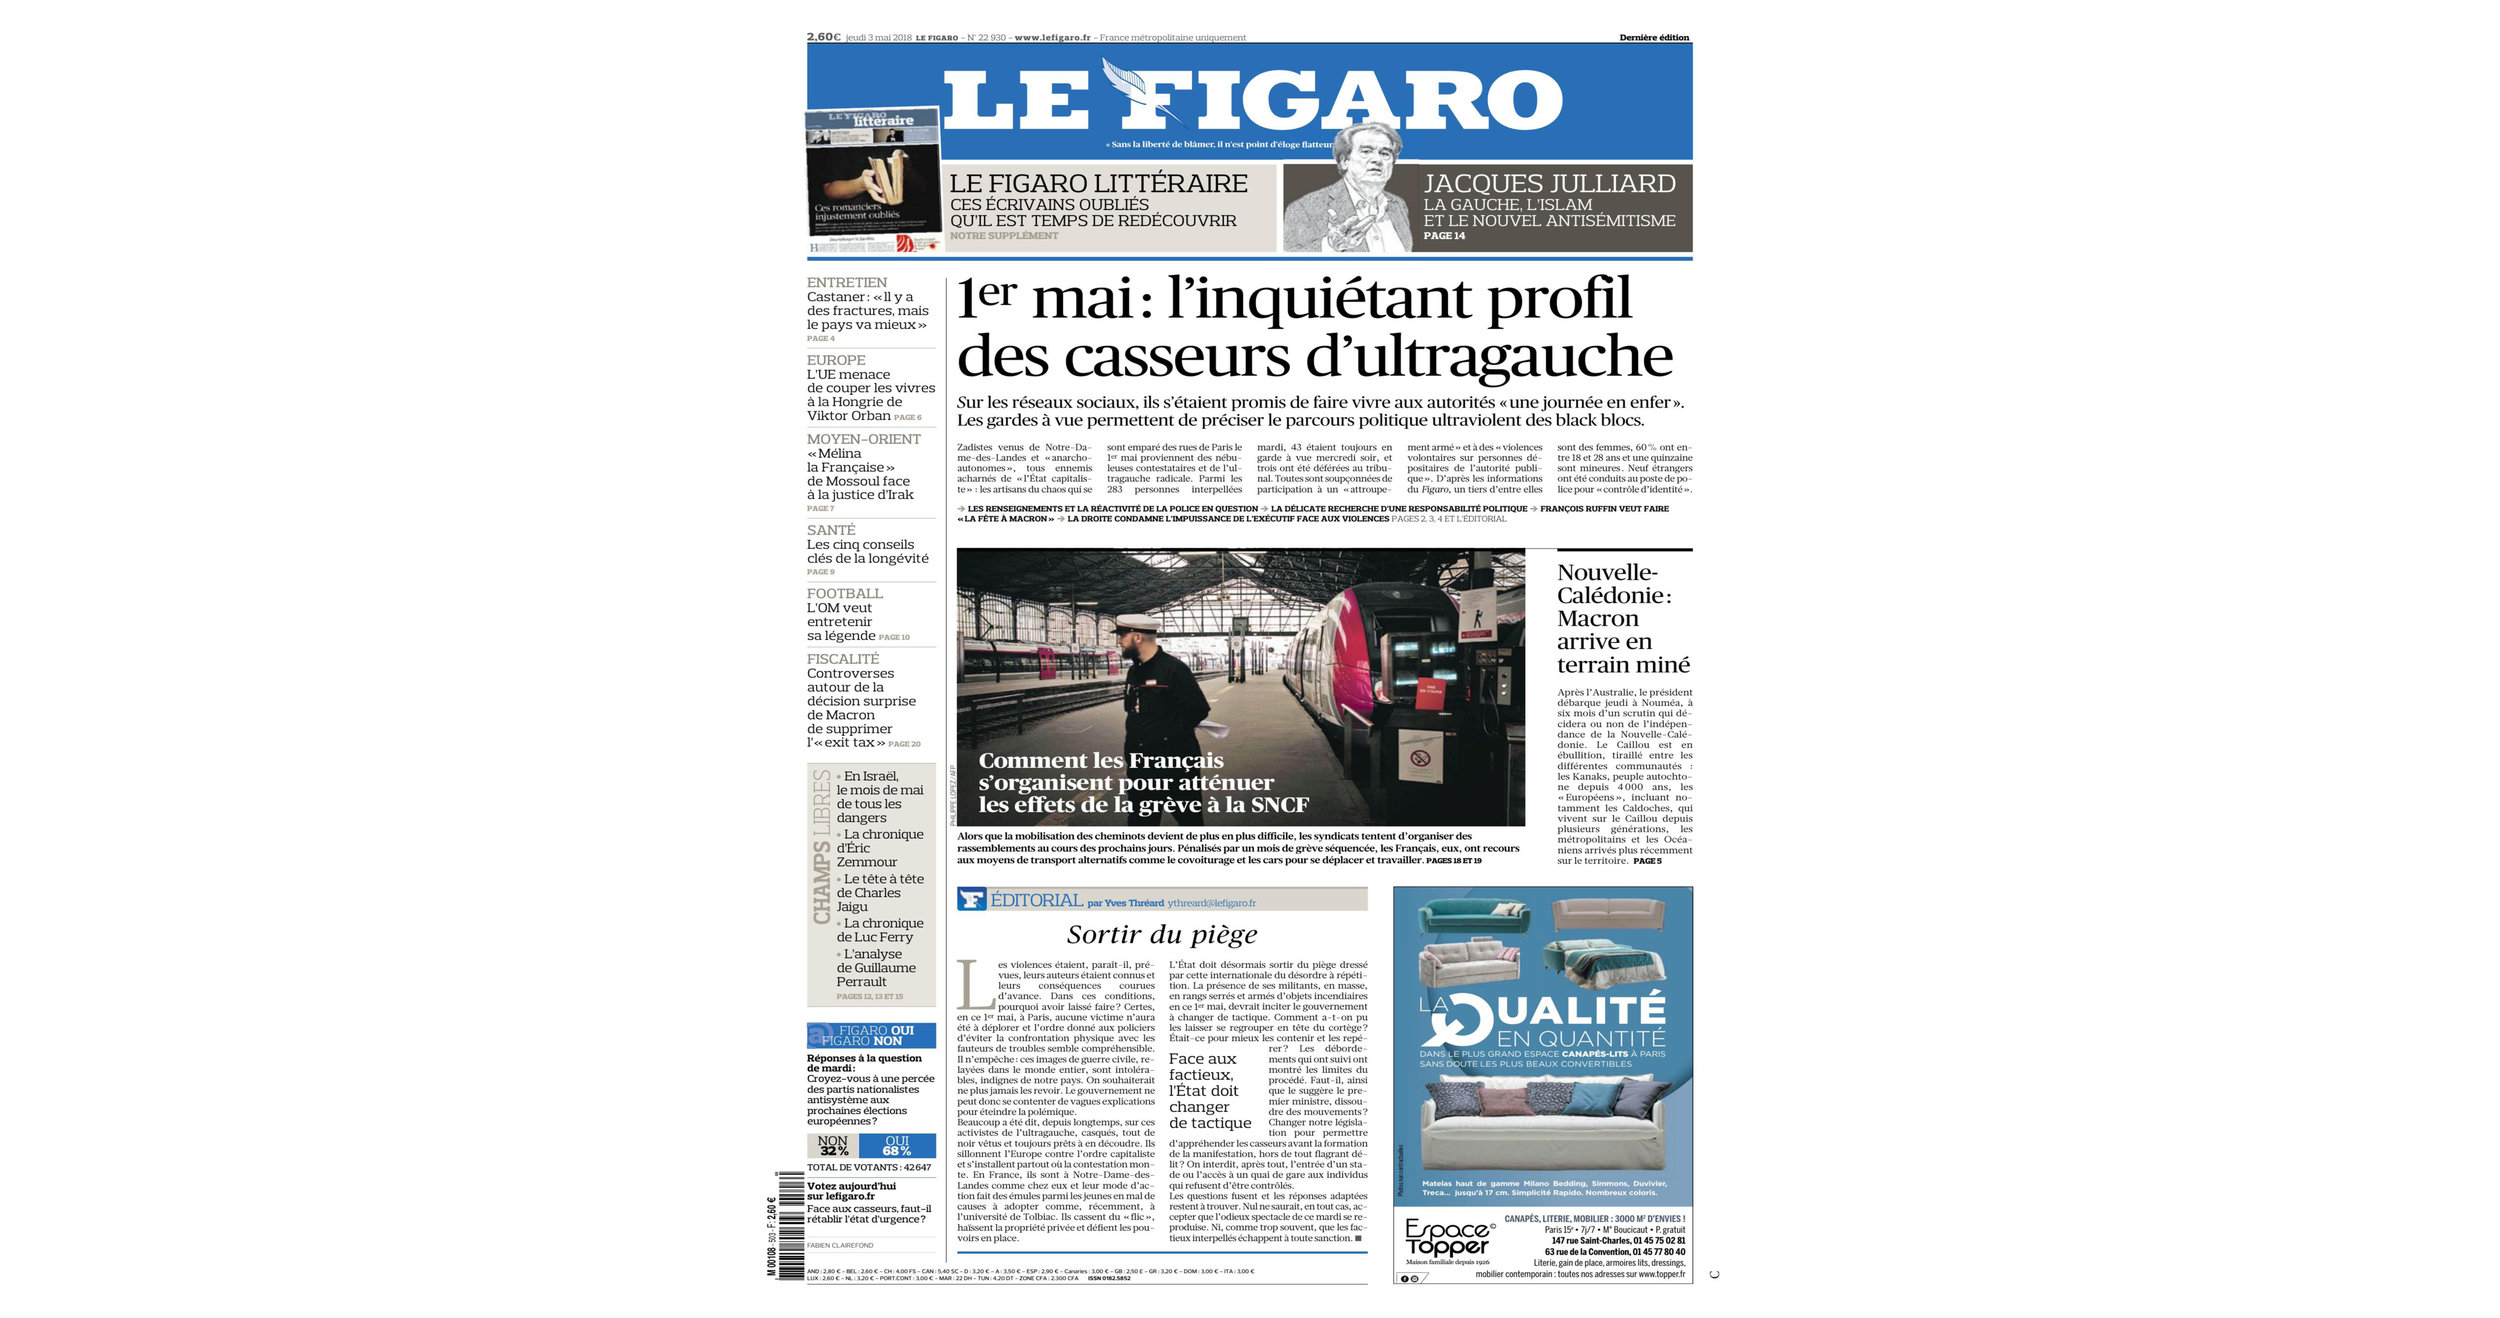 THE KID in LE FIGARO Newspaper - Leading National Daily Newspaper - Print Issue - France - June 03 2018 - Page 27 - Cover page.jpg